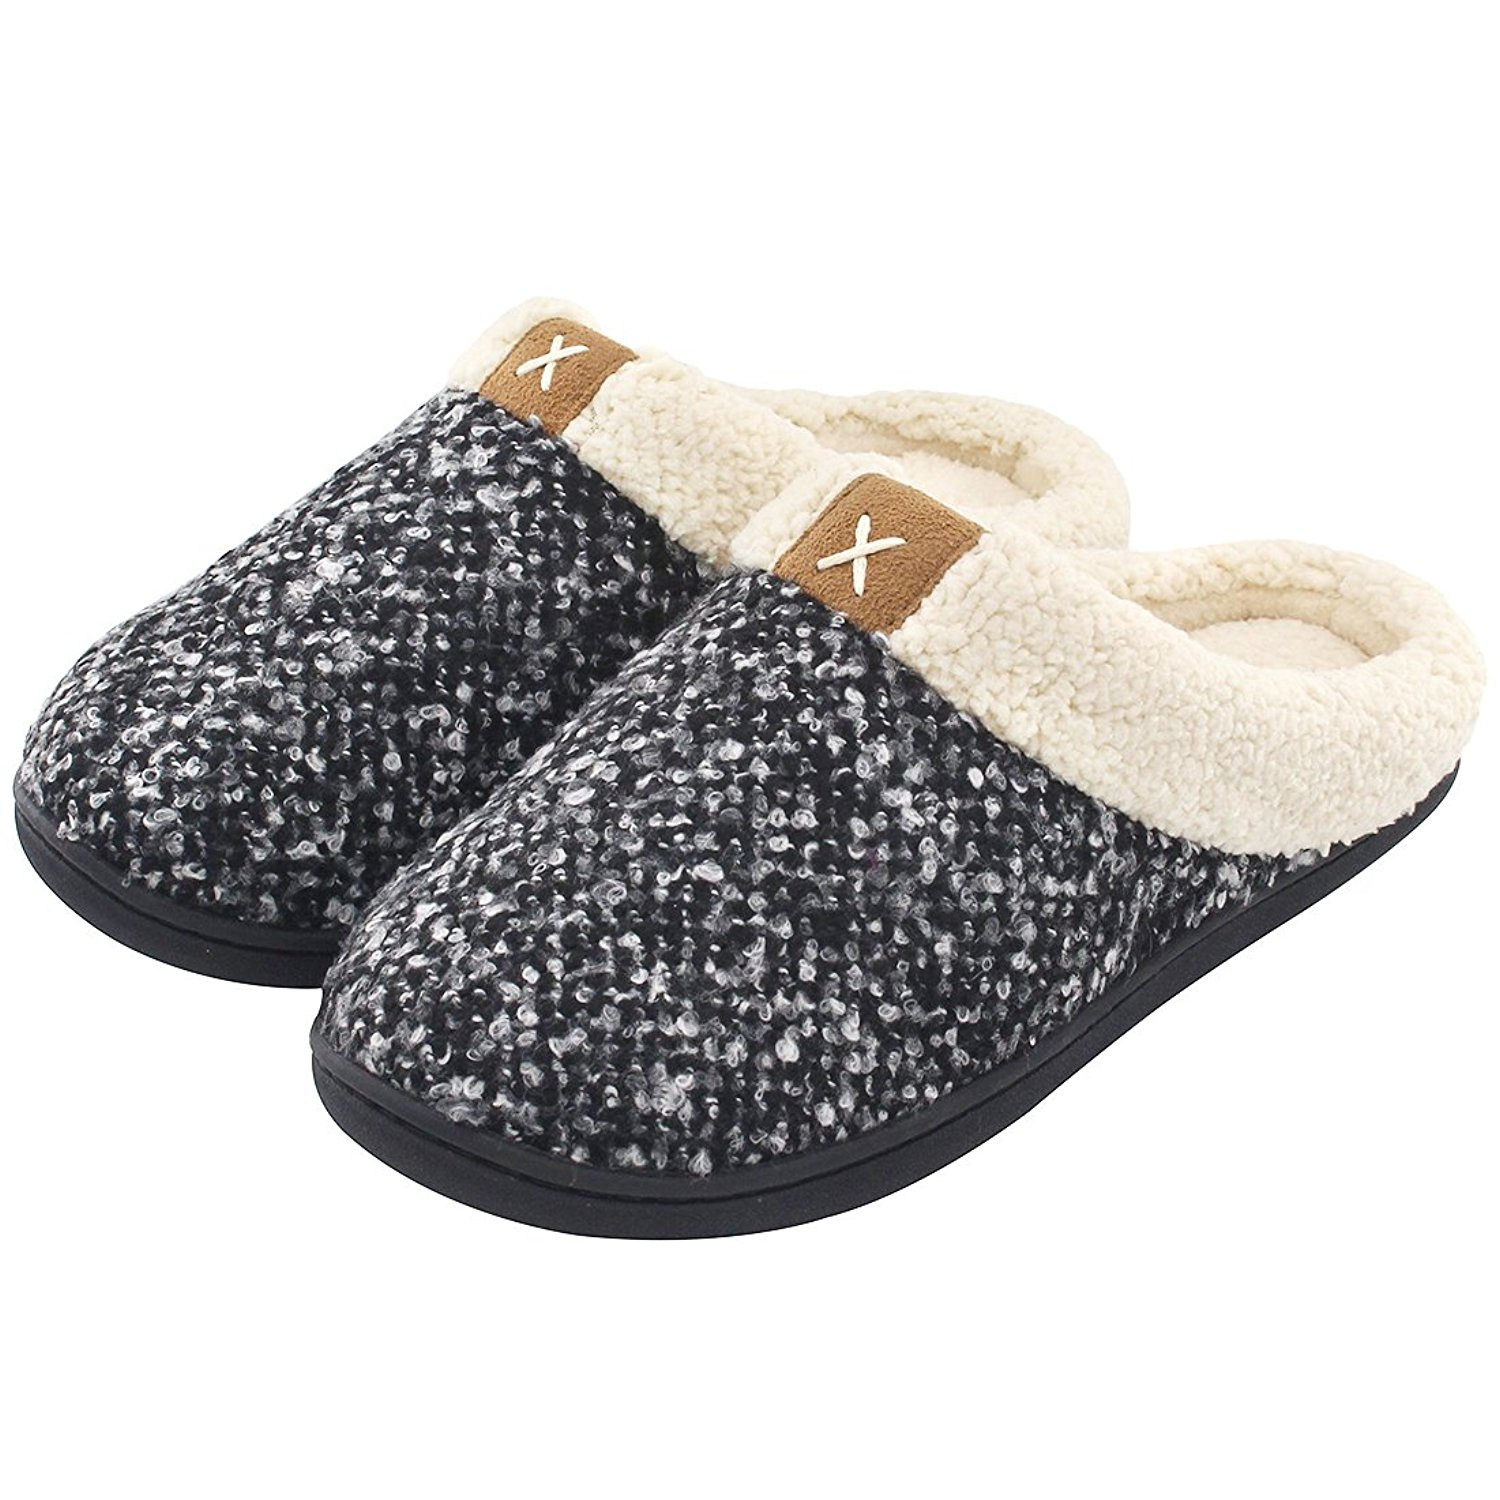 Women's Cozy Memory Foam Slippers Fuzzy Wool-Like Plush Fleece Lined House Shoes w/Indoor, Outdoor Anti-Skid Rubber Sole